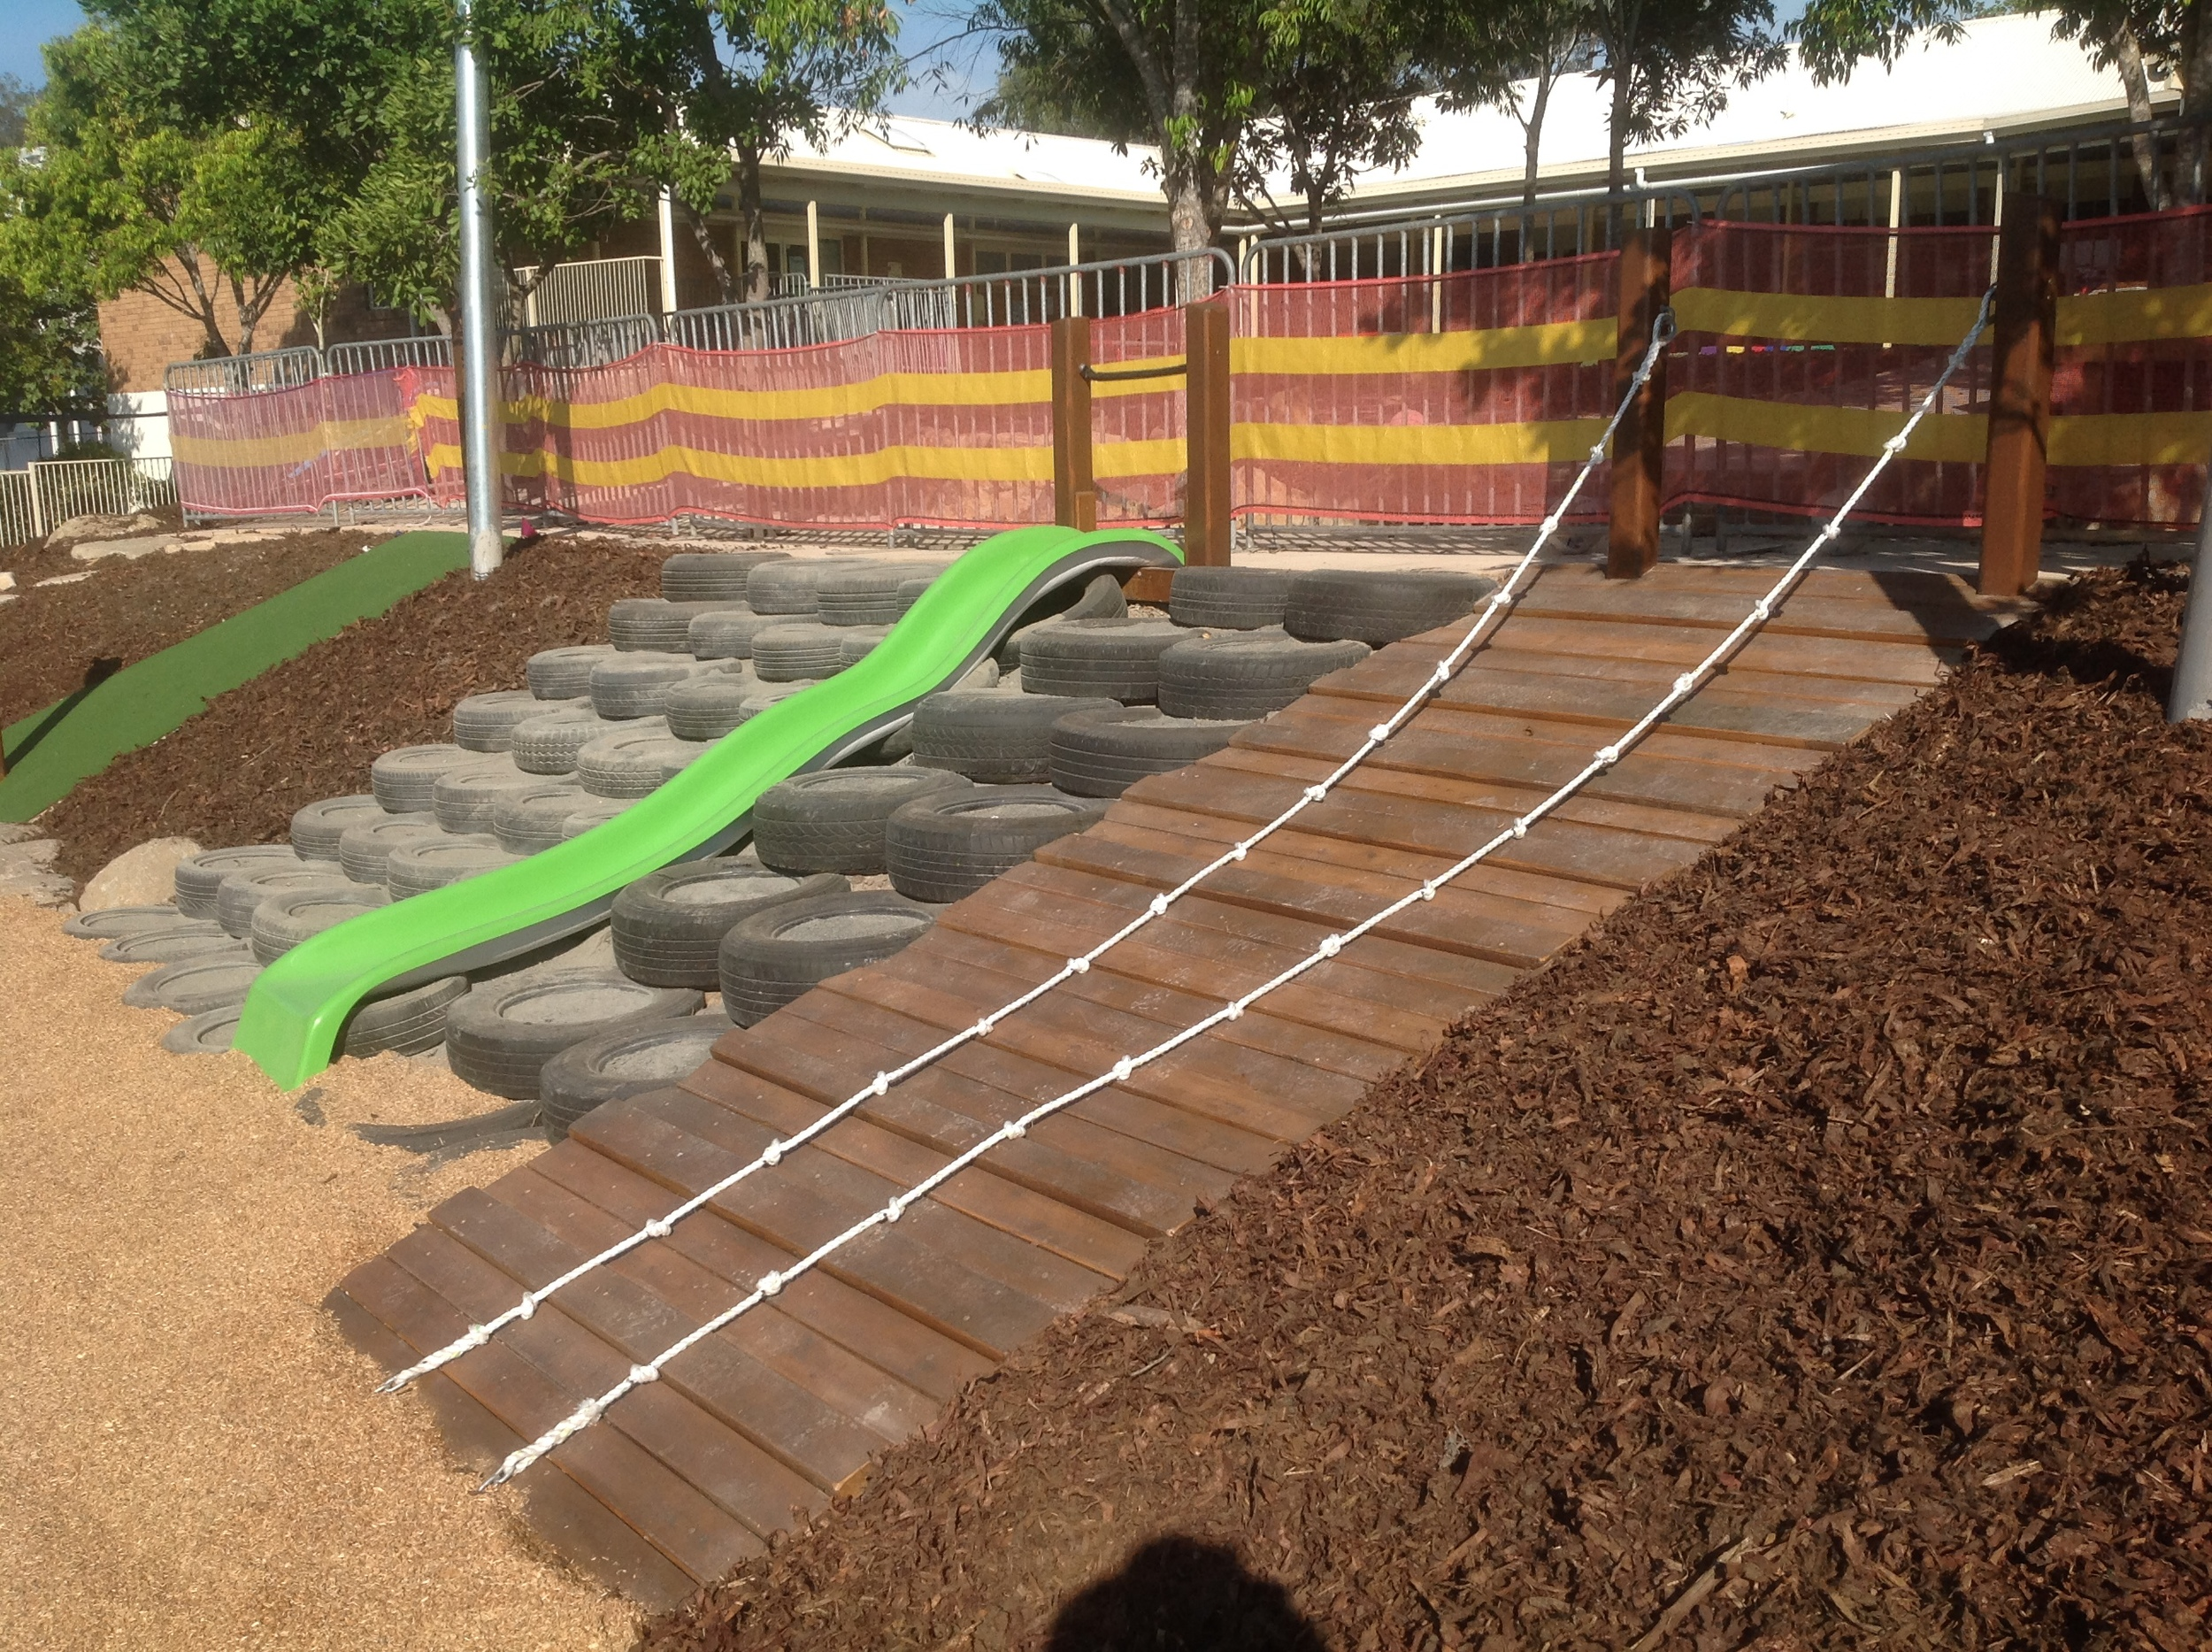 MULTIPLE  ACCESS TO LOWER LEVEL VIA RAMP, TYRE CLIMB, SLIDE